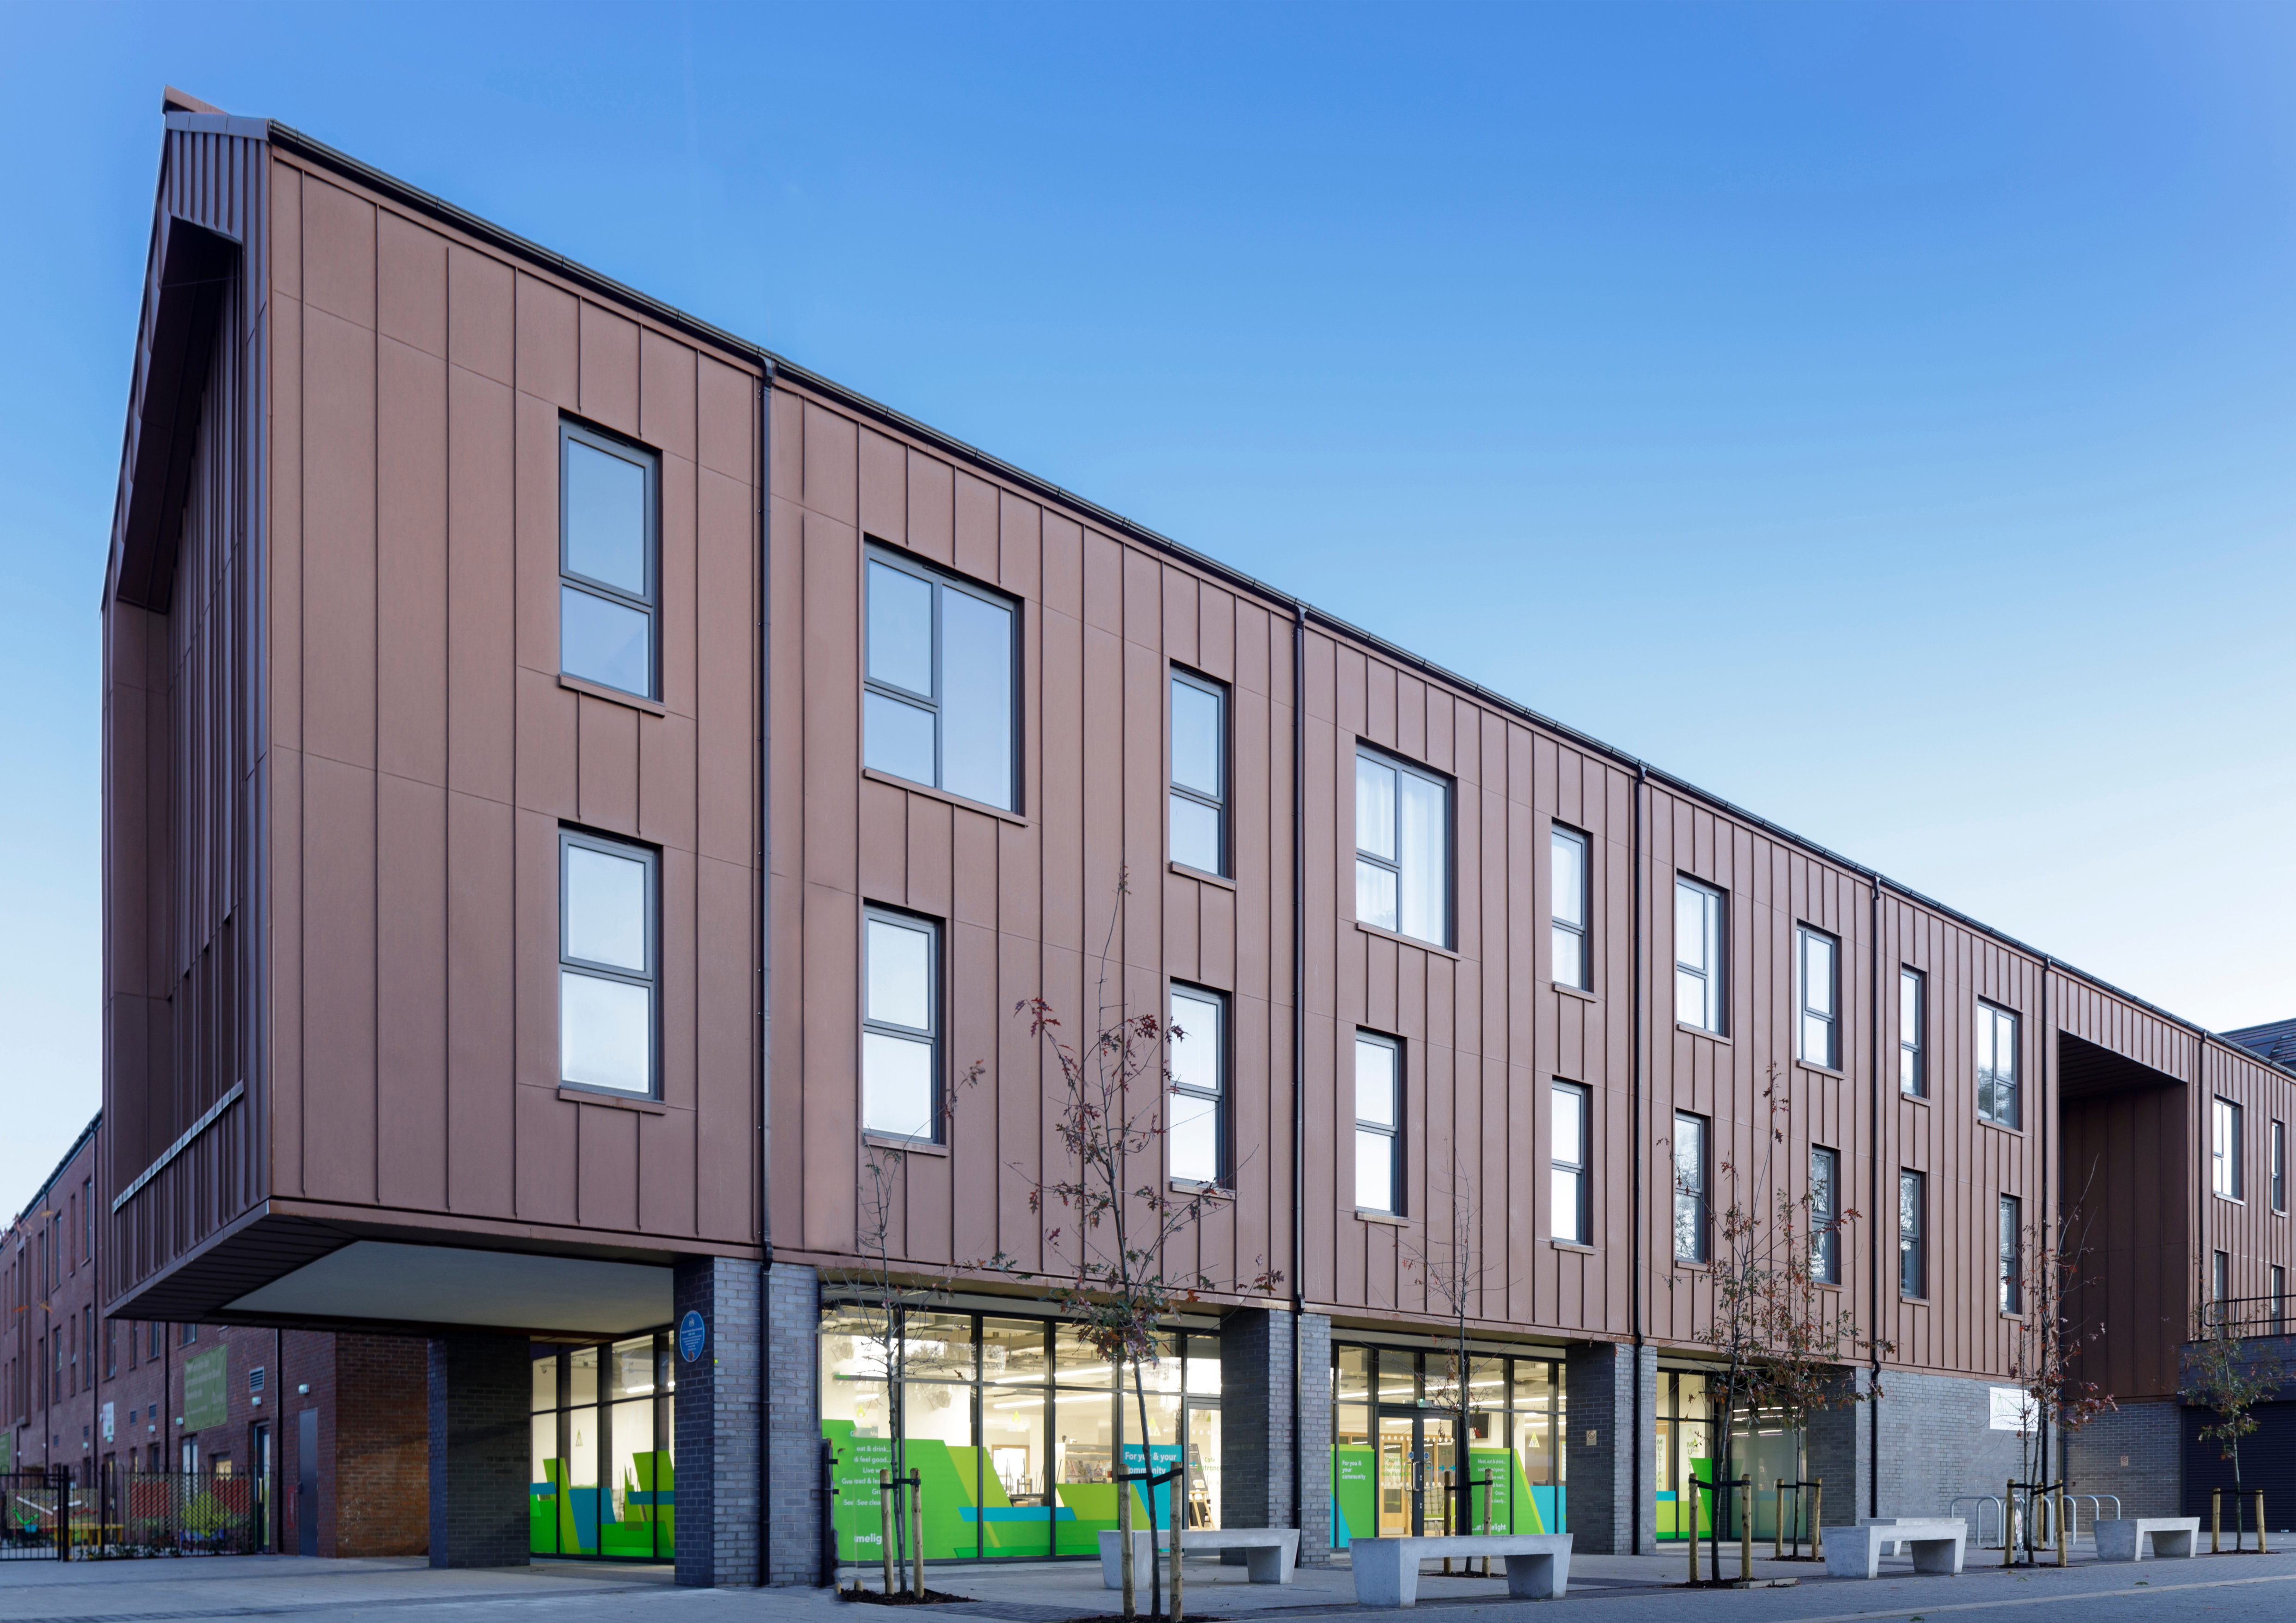 PRP and Trafford Housing Trust set precedent for future community hubs with Limelight